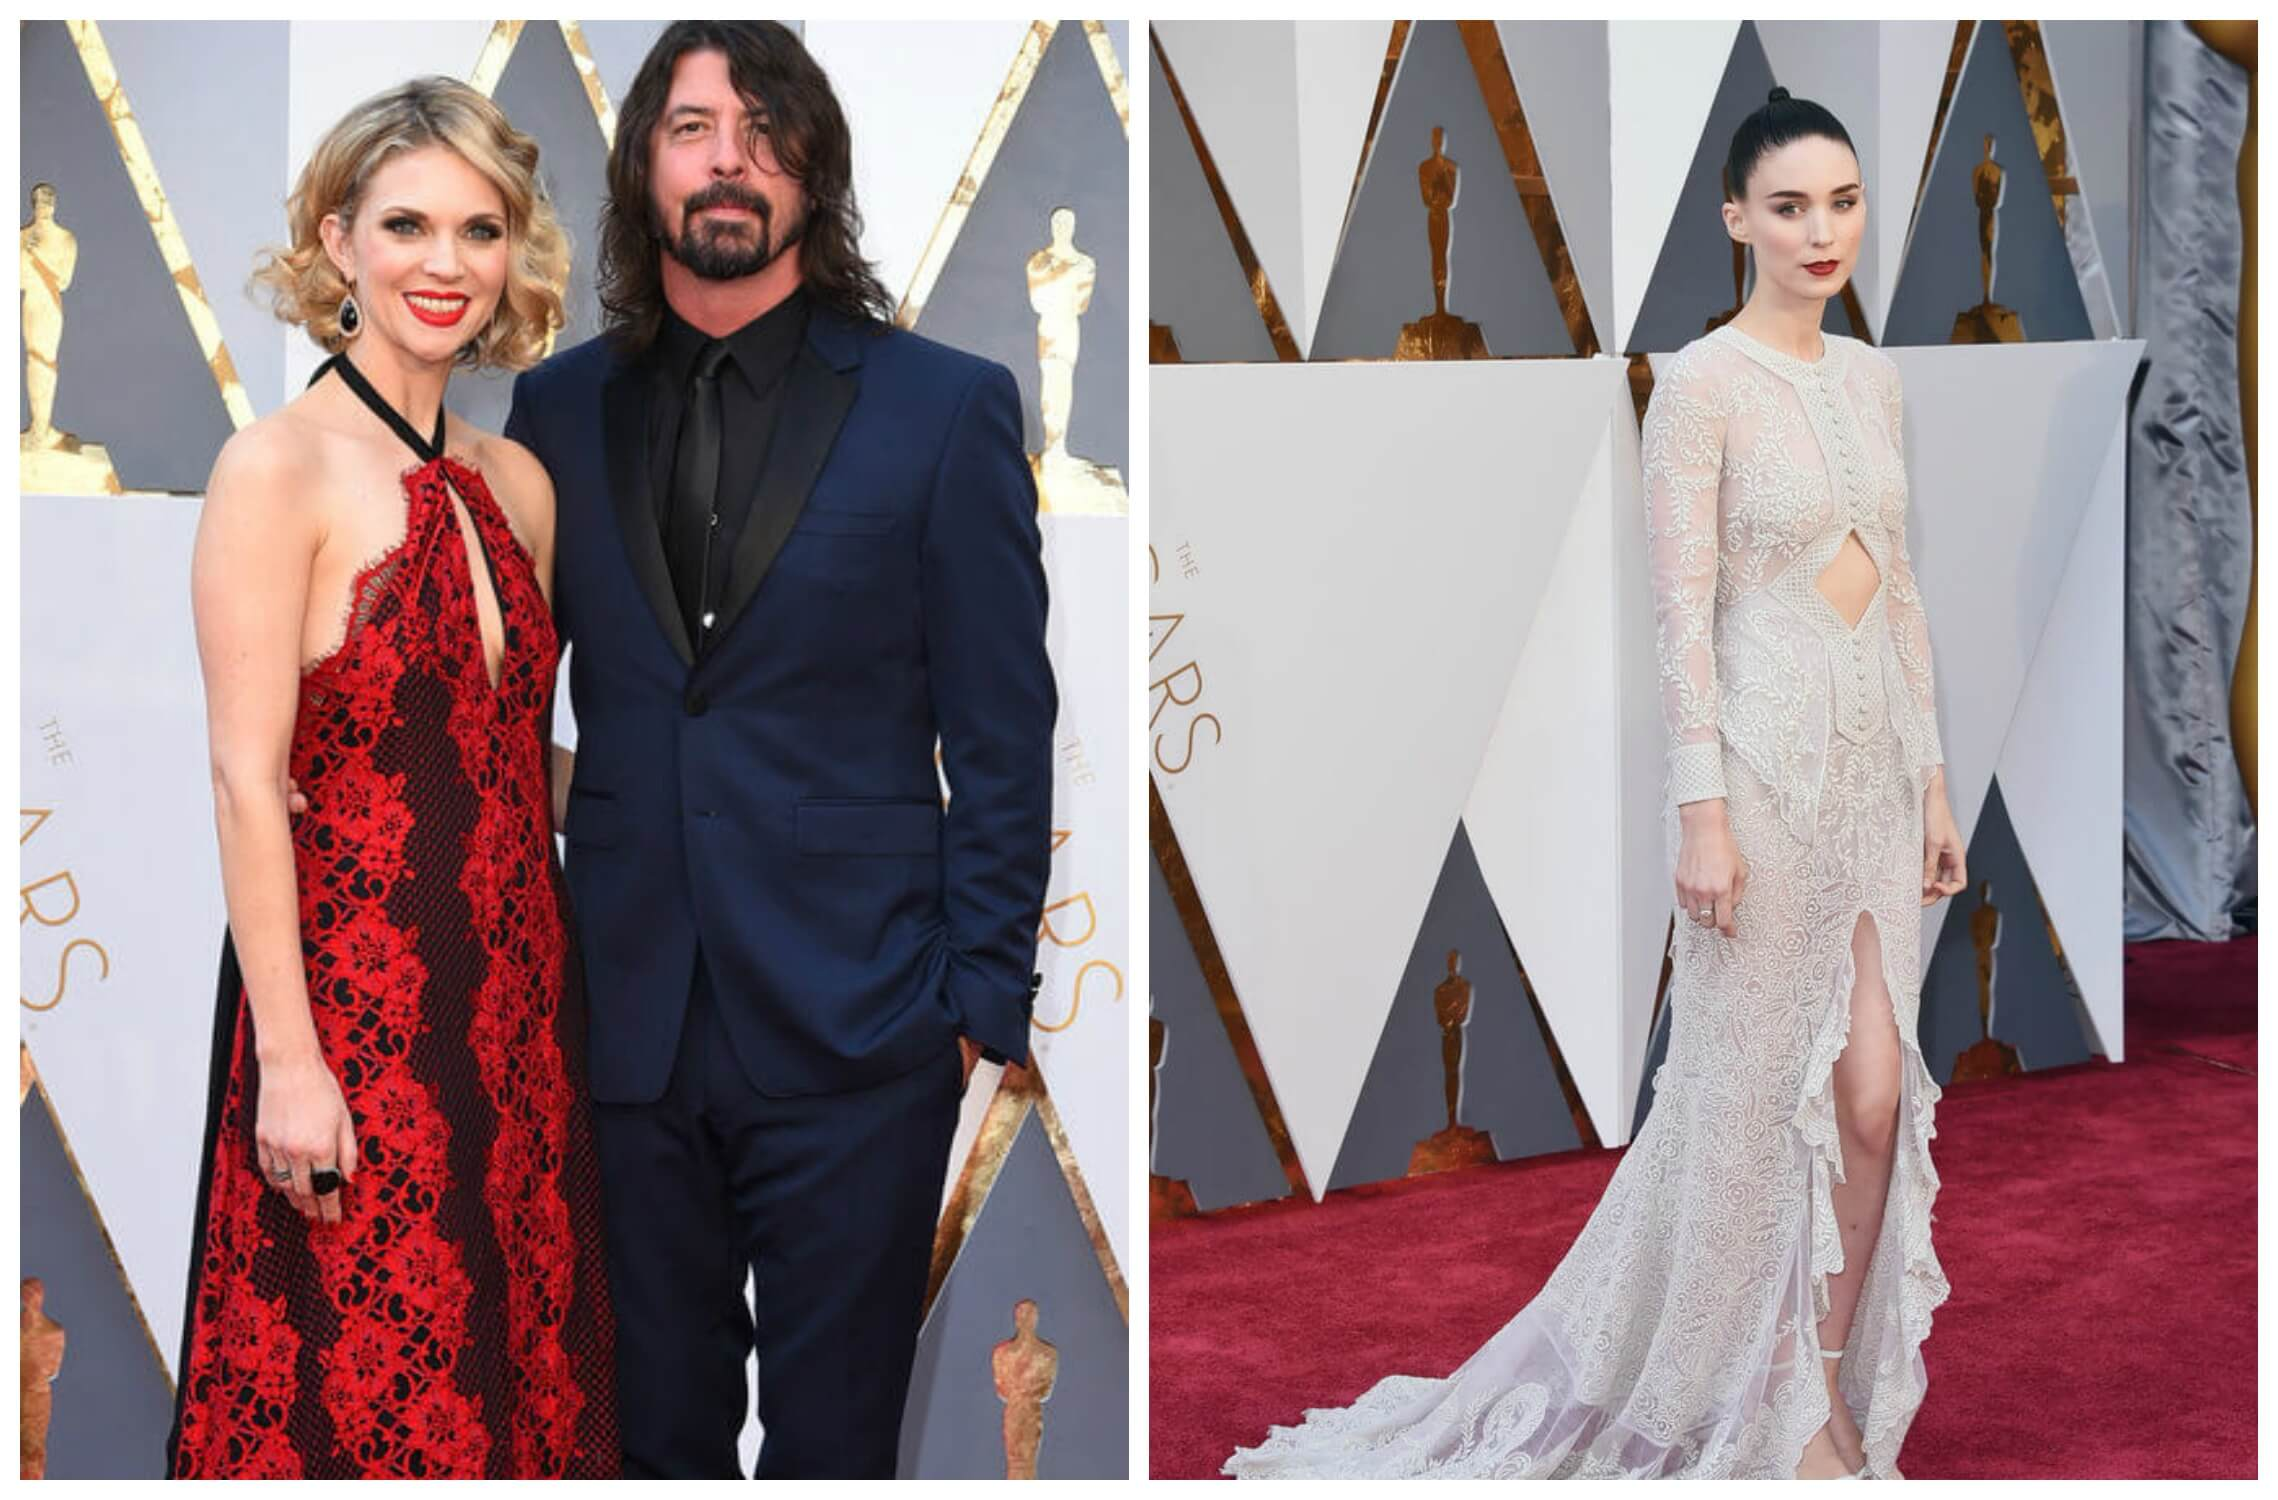 Jordyn Blum with hubby Dave Grohl at the 2016 Oscars with a chest cutout via In Style; Rooney Mara at the 2016 Oscars in Givenchy with a middle cutout via PopSugar